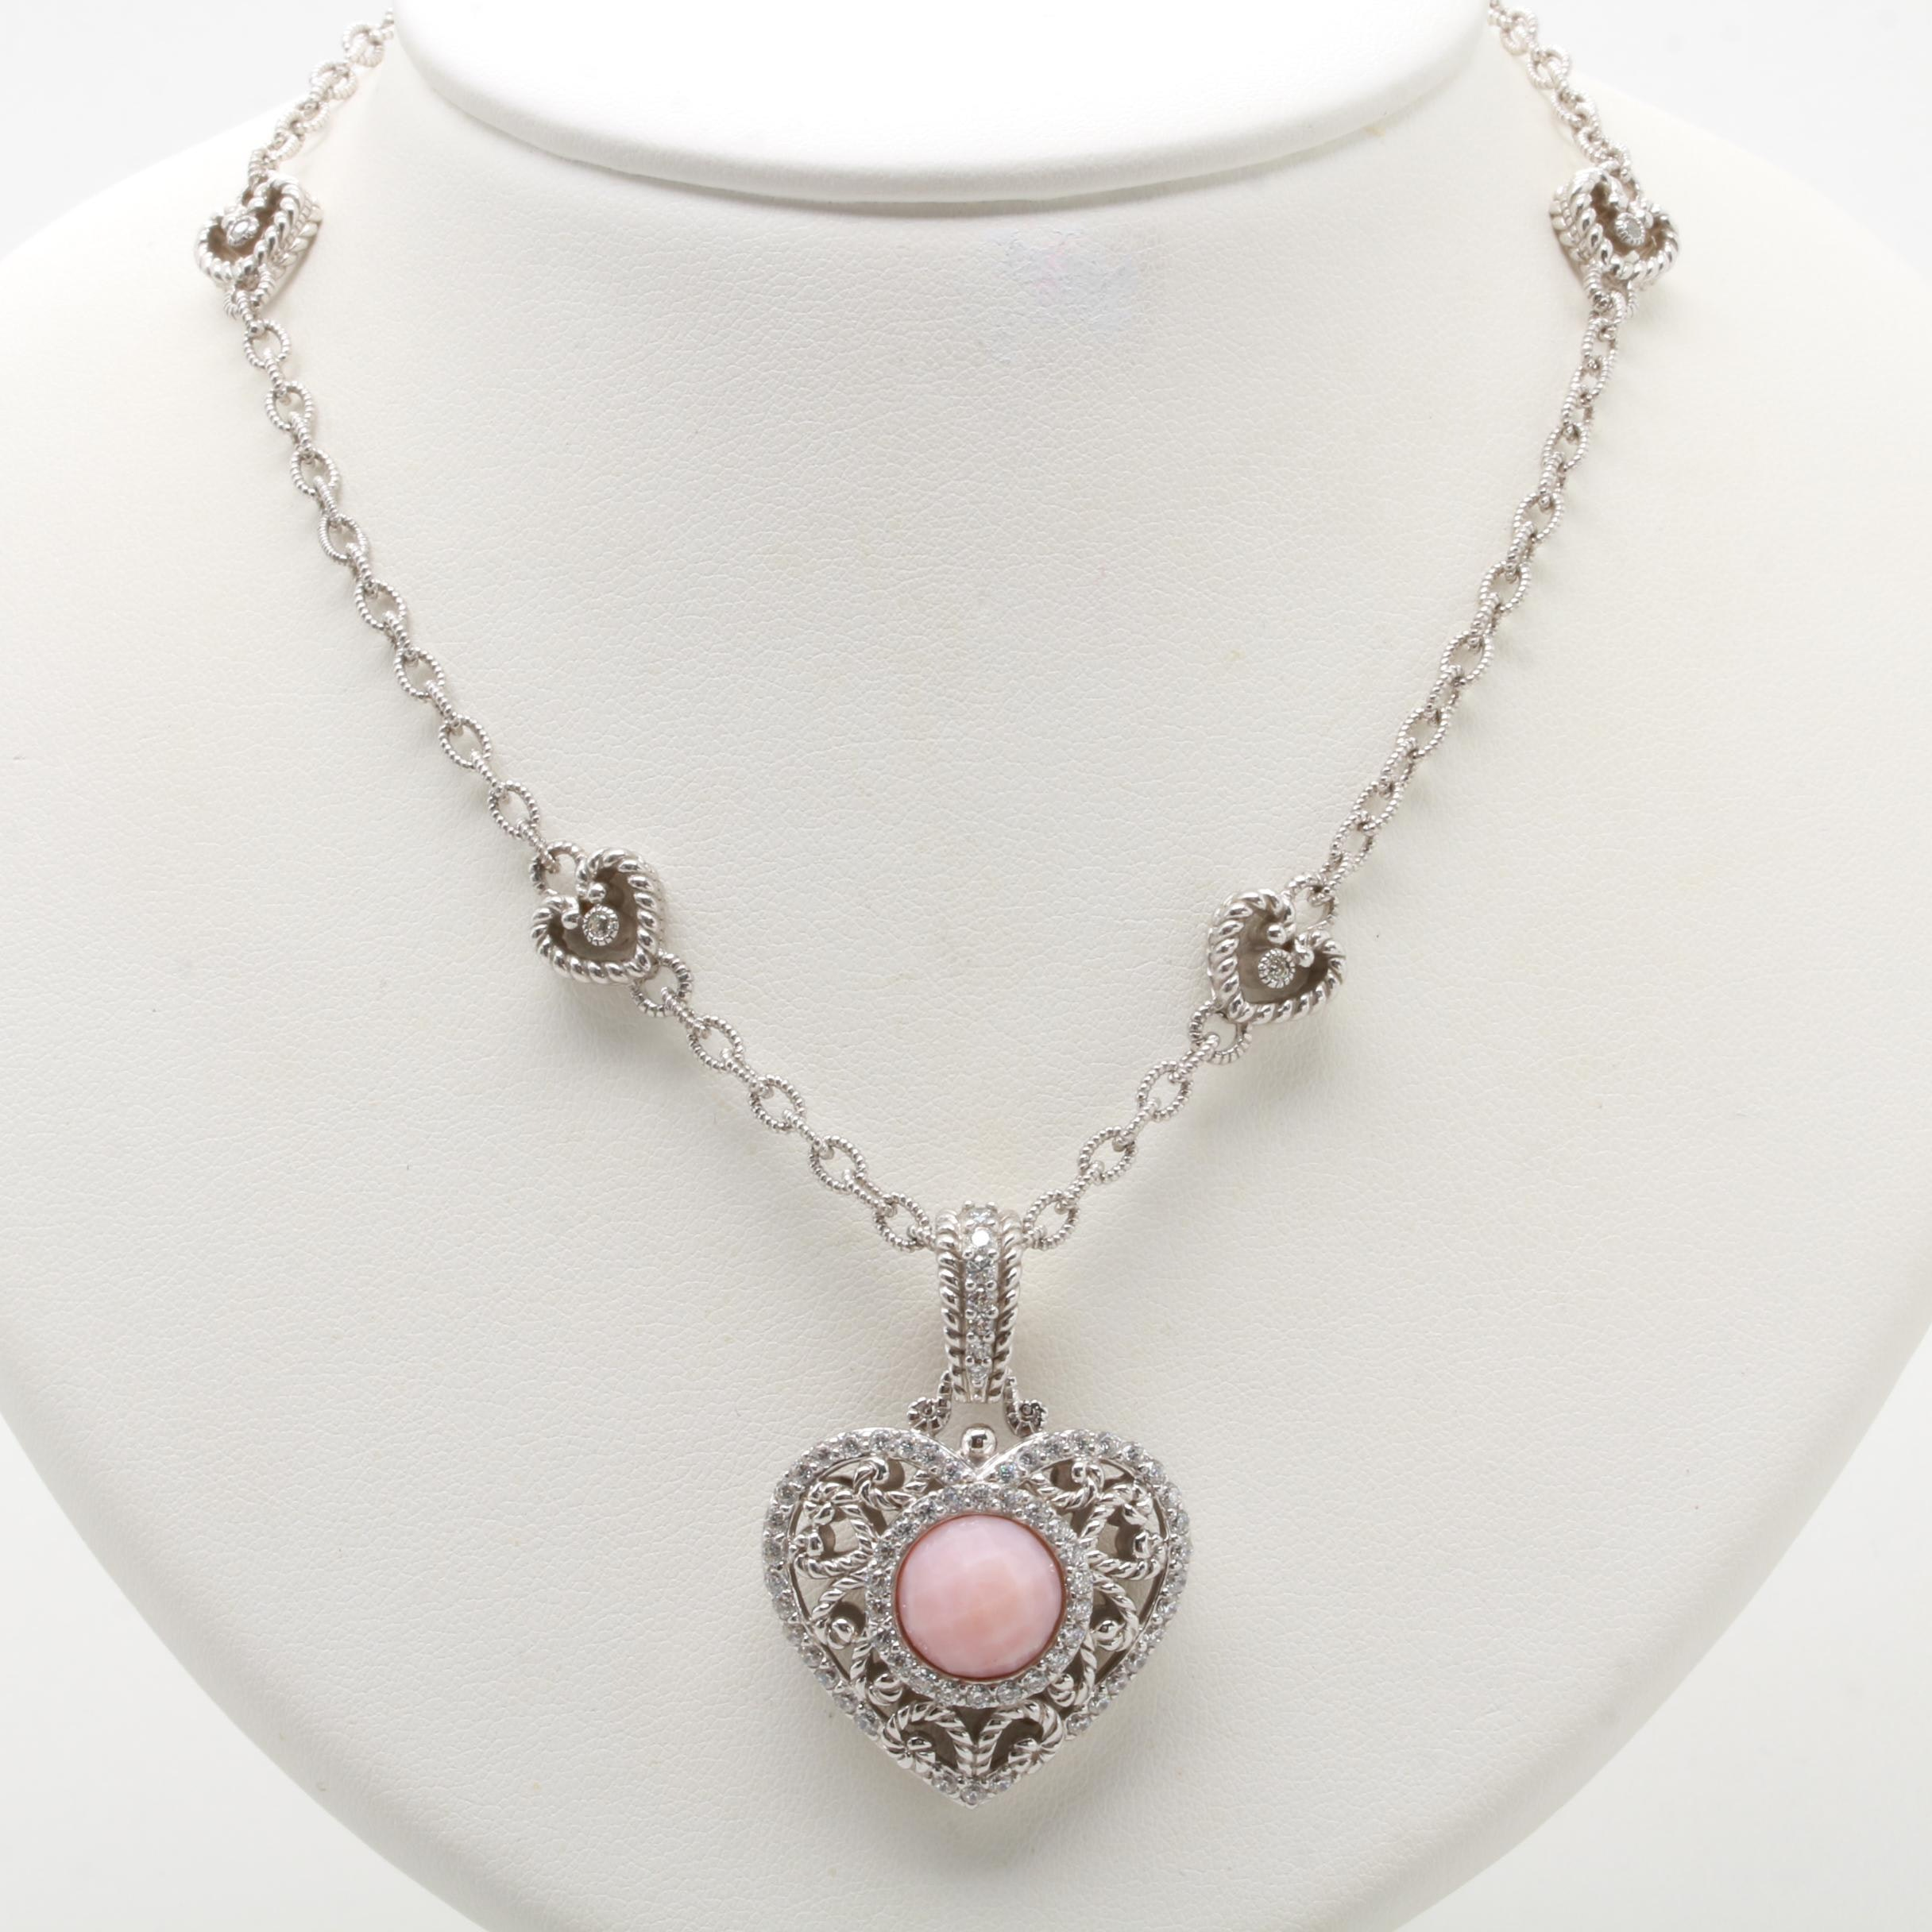 Judith Ripka Sterling Silver Rhodochrosite and Cubic Zirconia Necklace